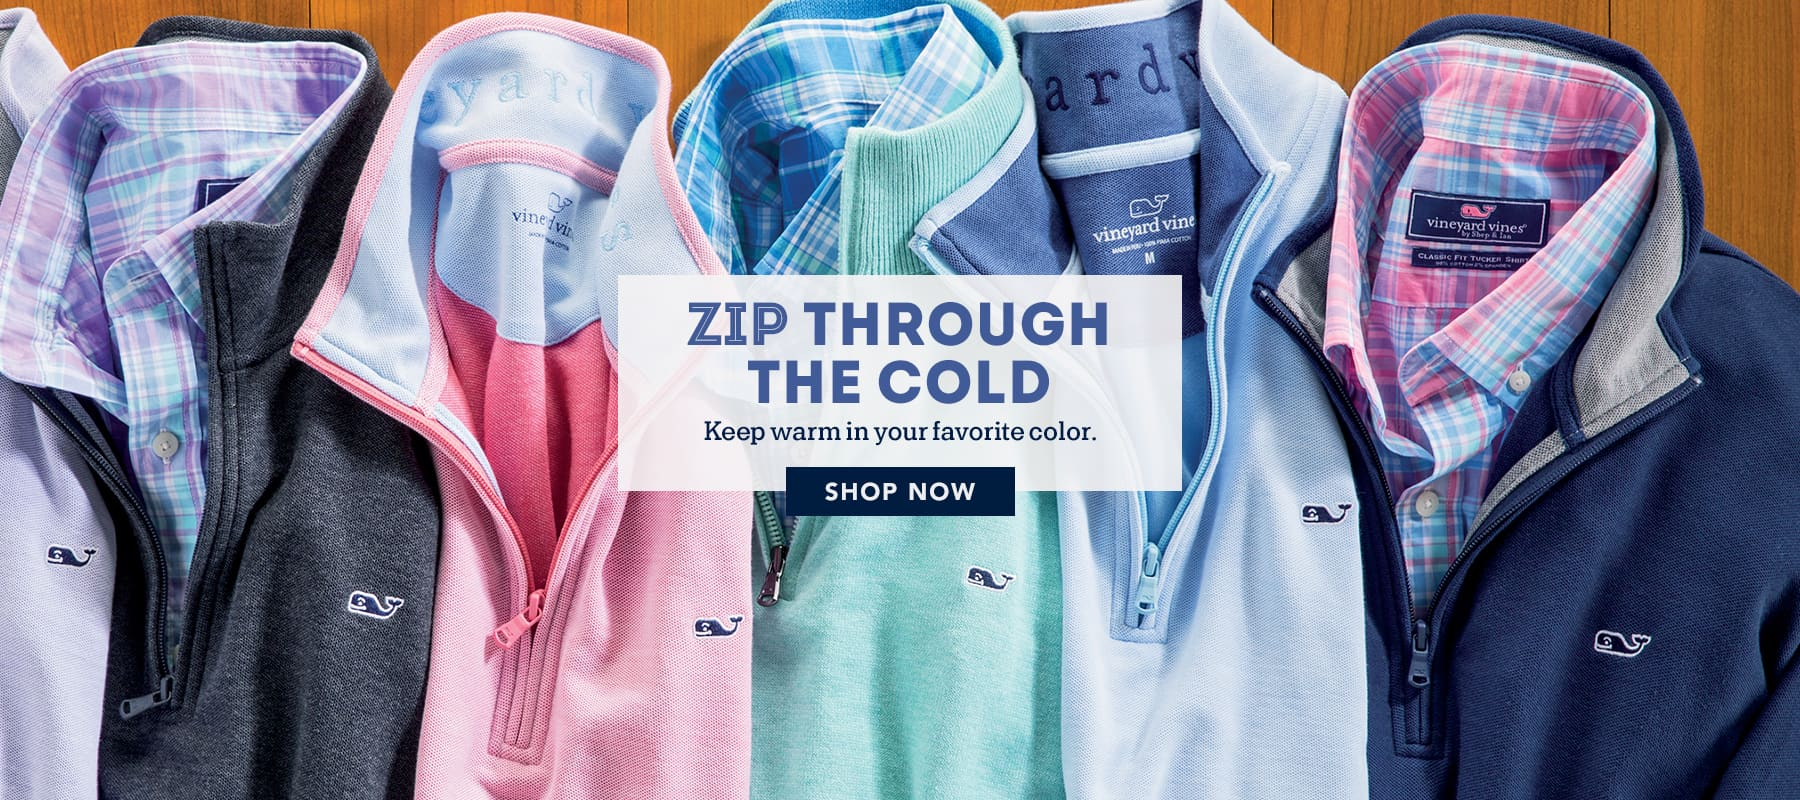 Zip through the cold. Keep warm in your favorite color. Shop Now.